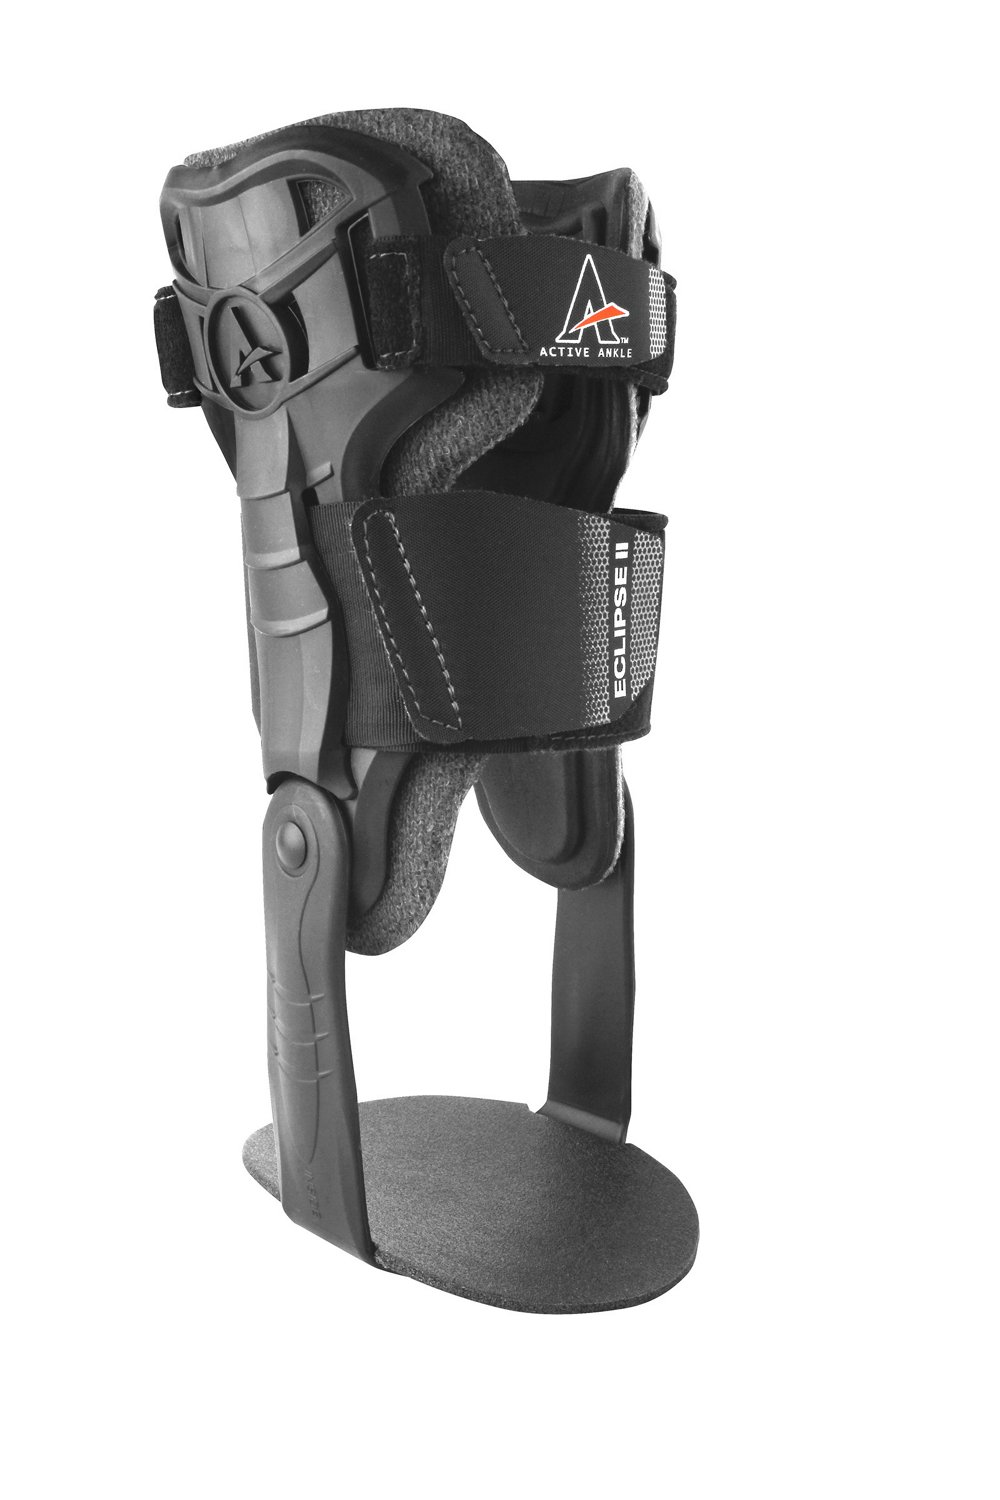 Cramer Adults' Active Ankle Eclipse II Ankle Brace